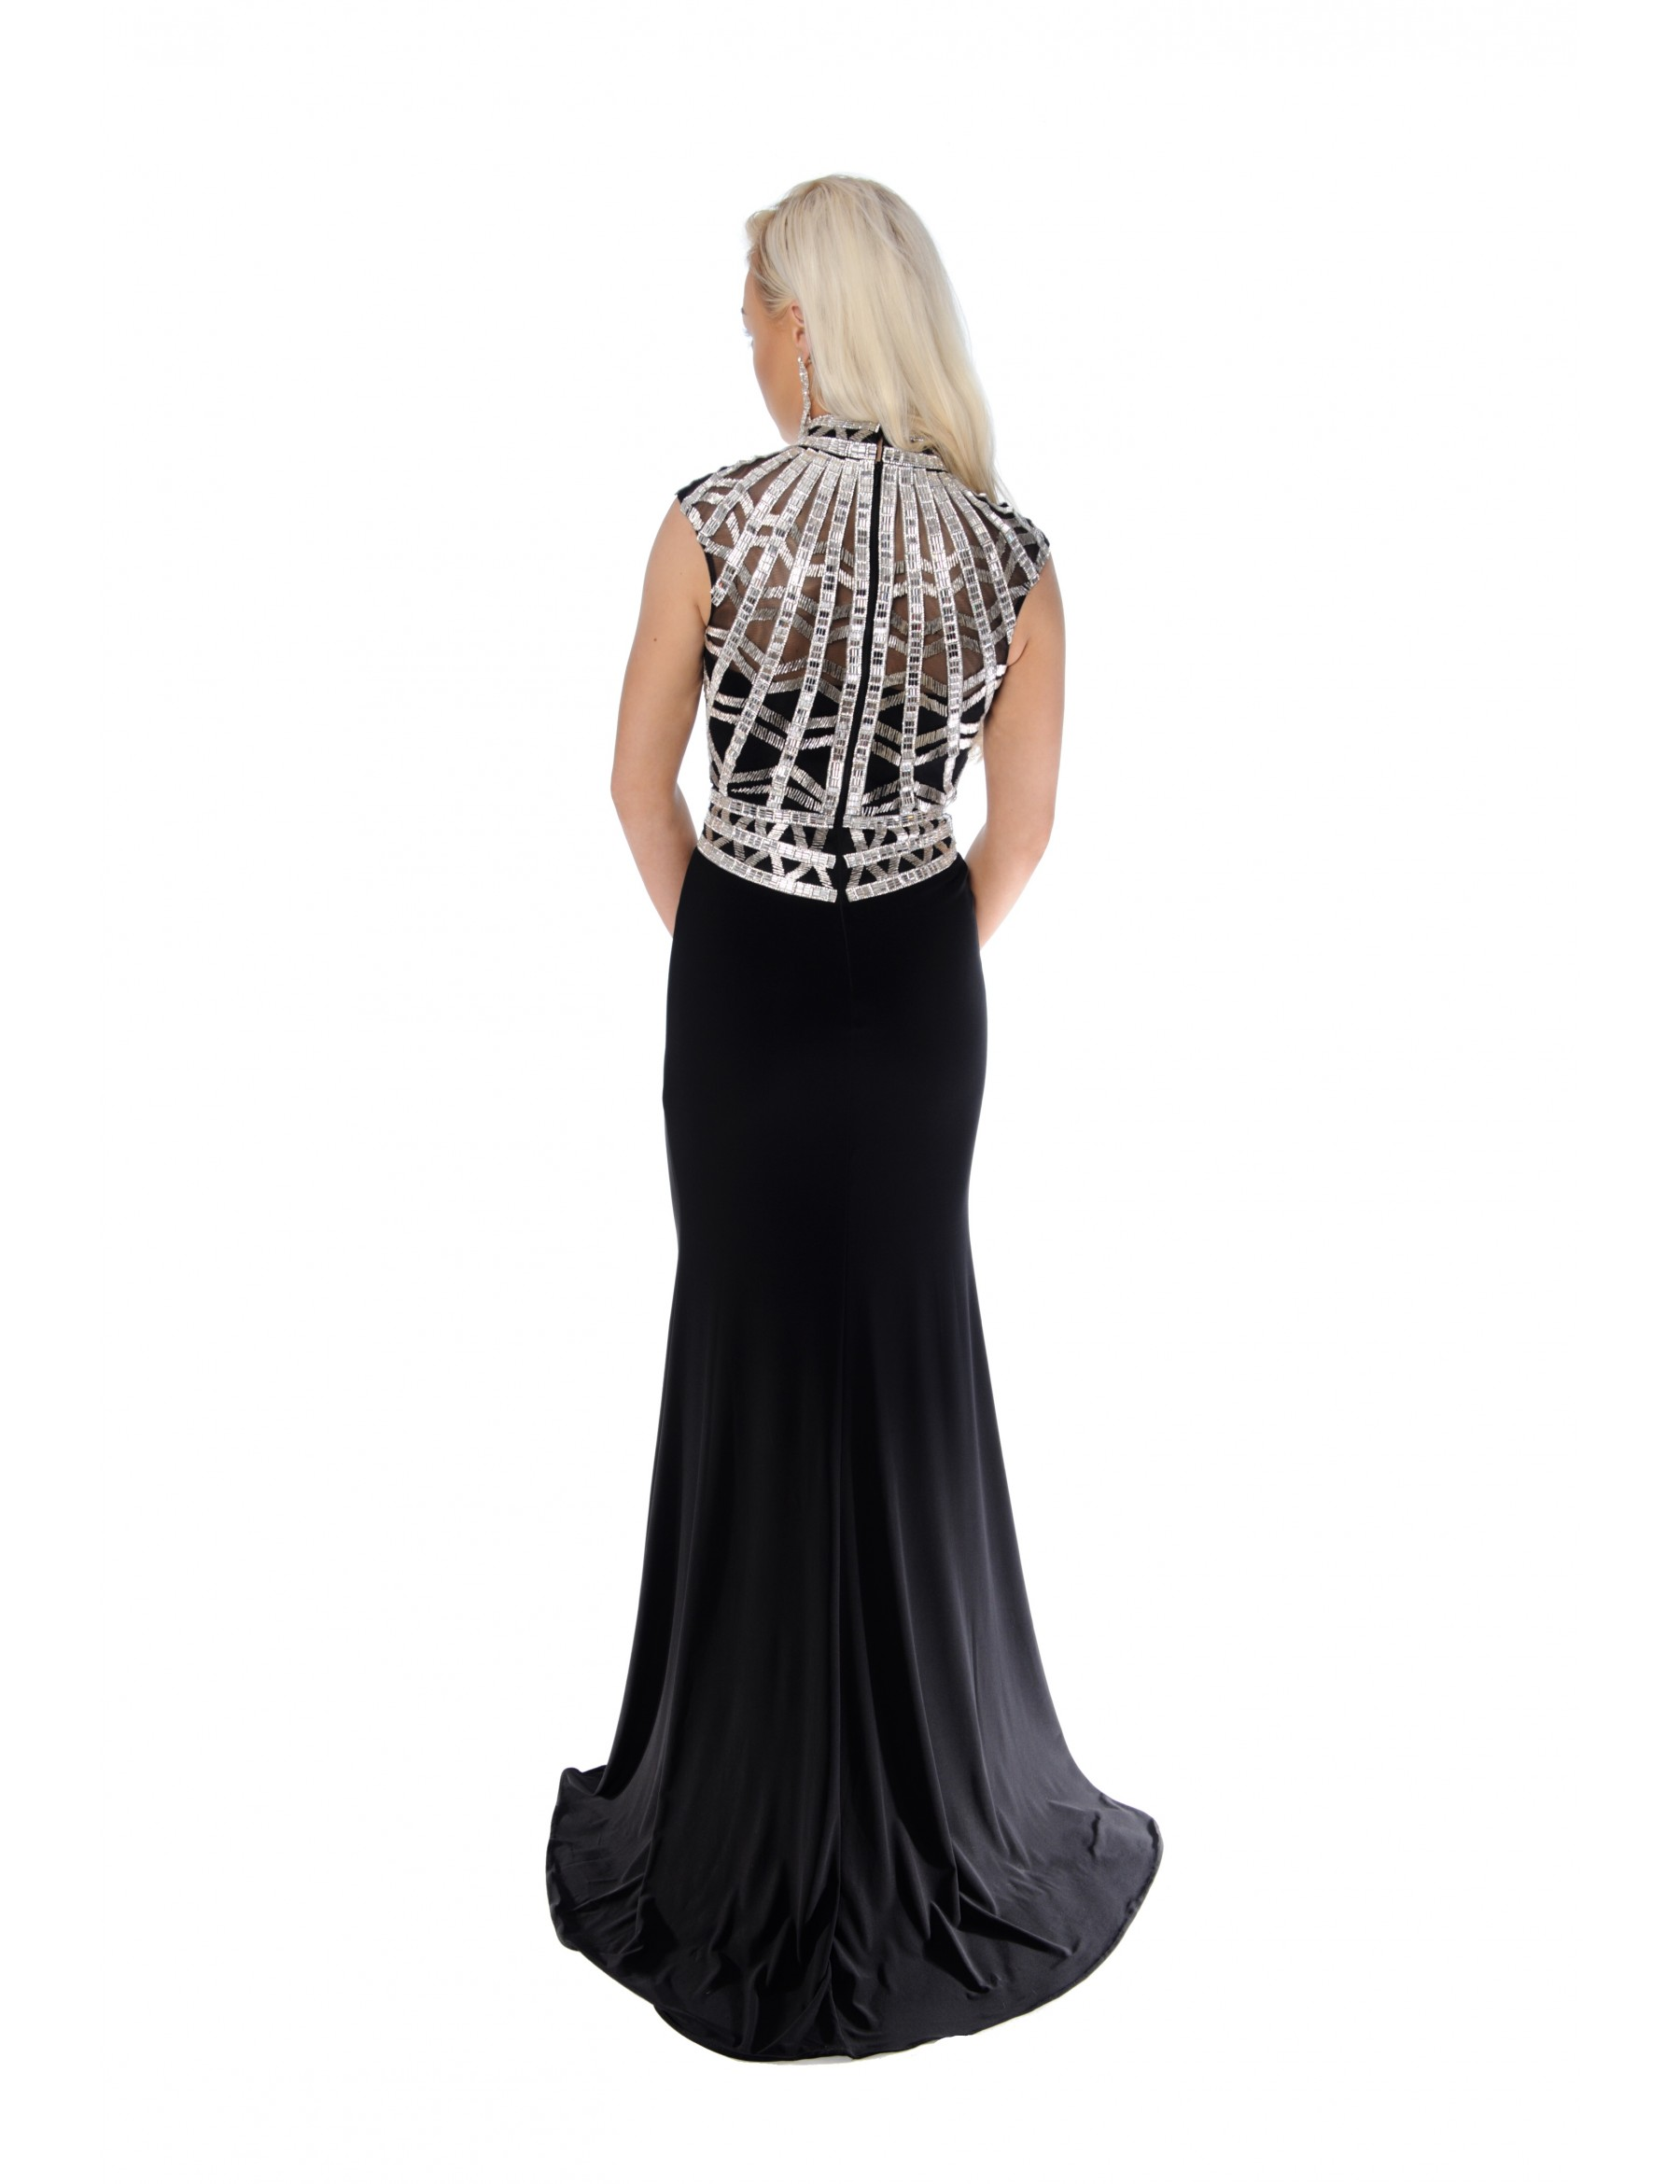 Glamorous Silver/Black High Neck